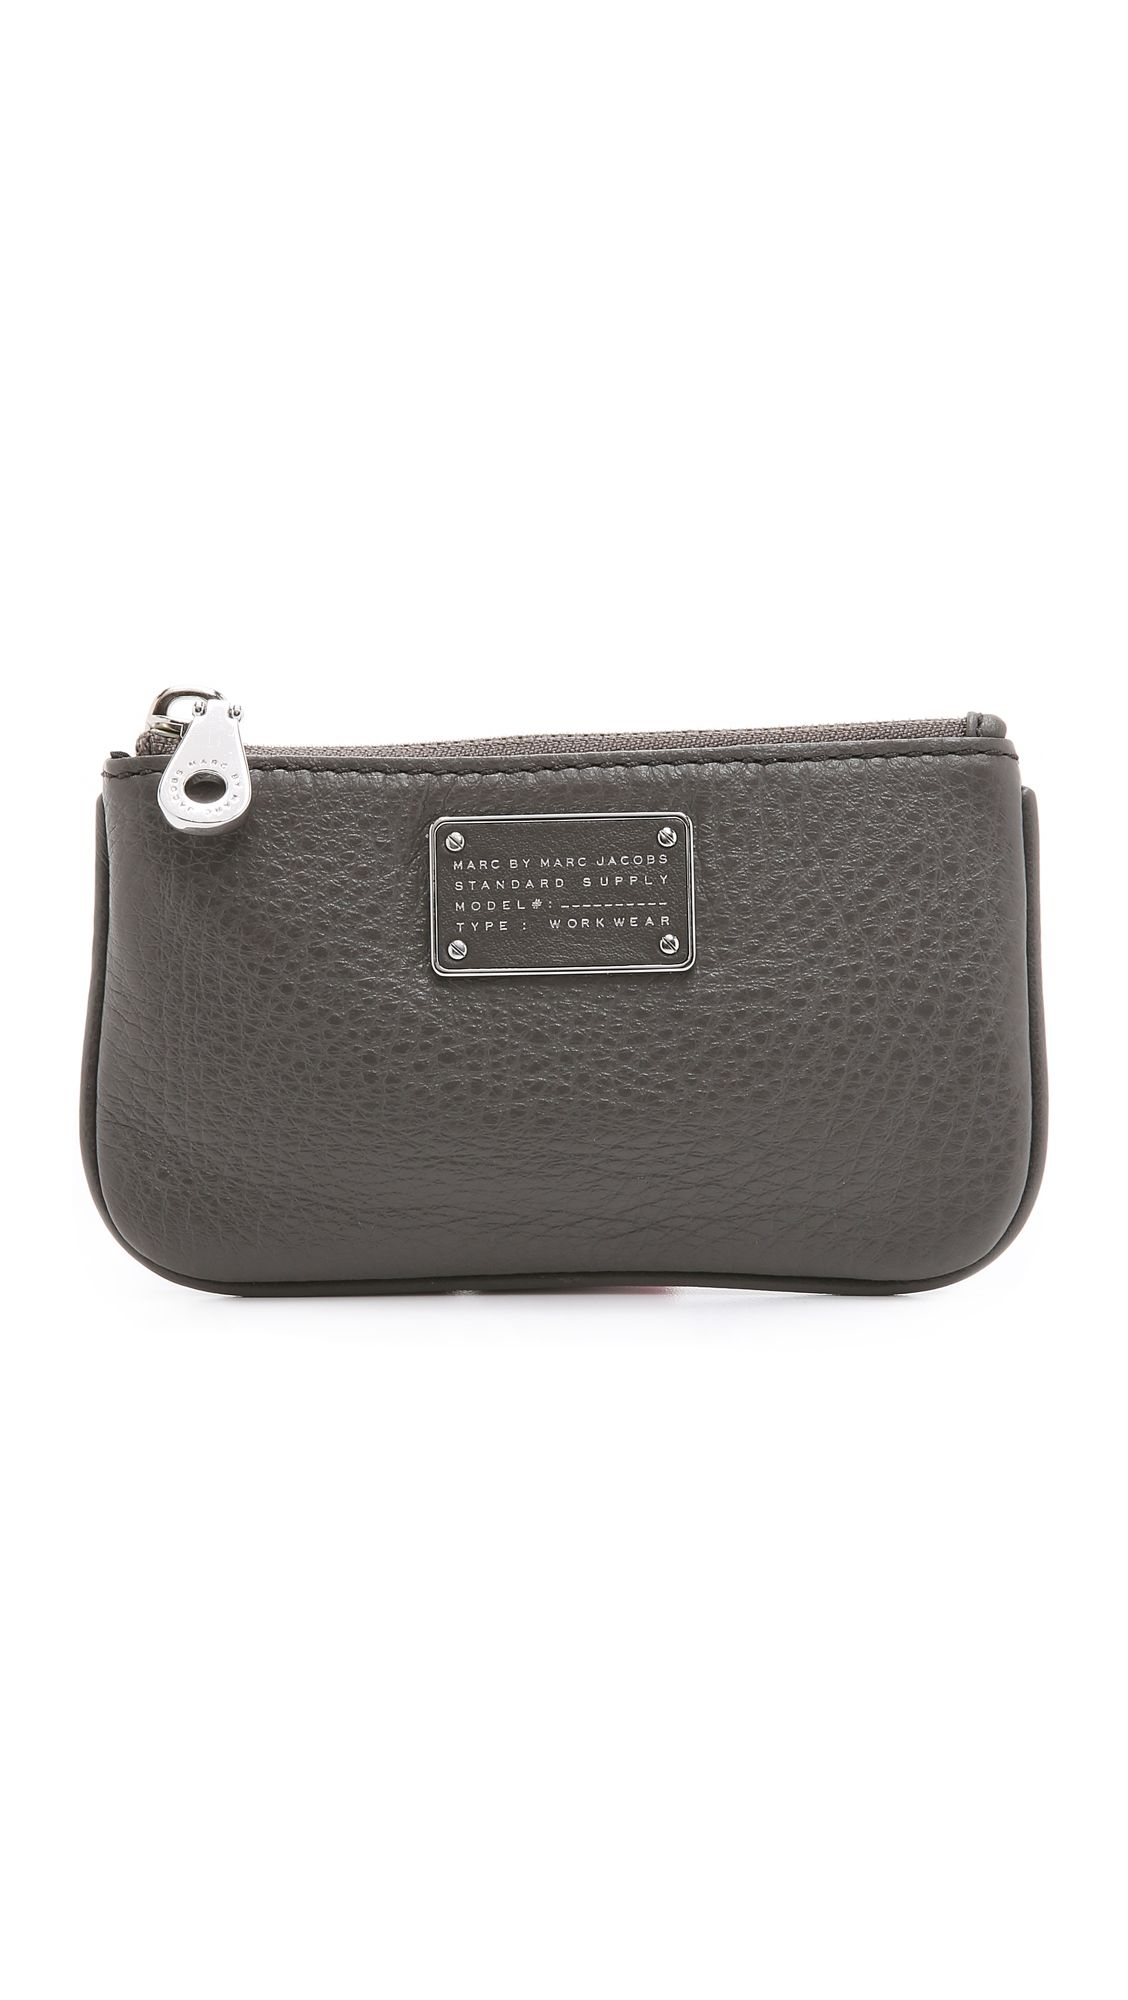 258ae49e2156 Marc By Marc Jacobs New Too Hot To Handle Key Pouch - Faded Aluminum ...